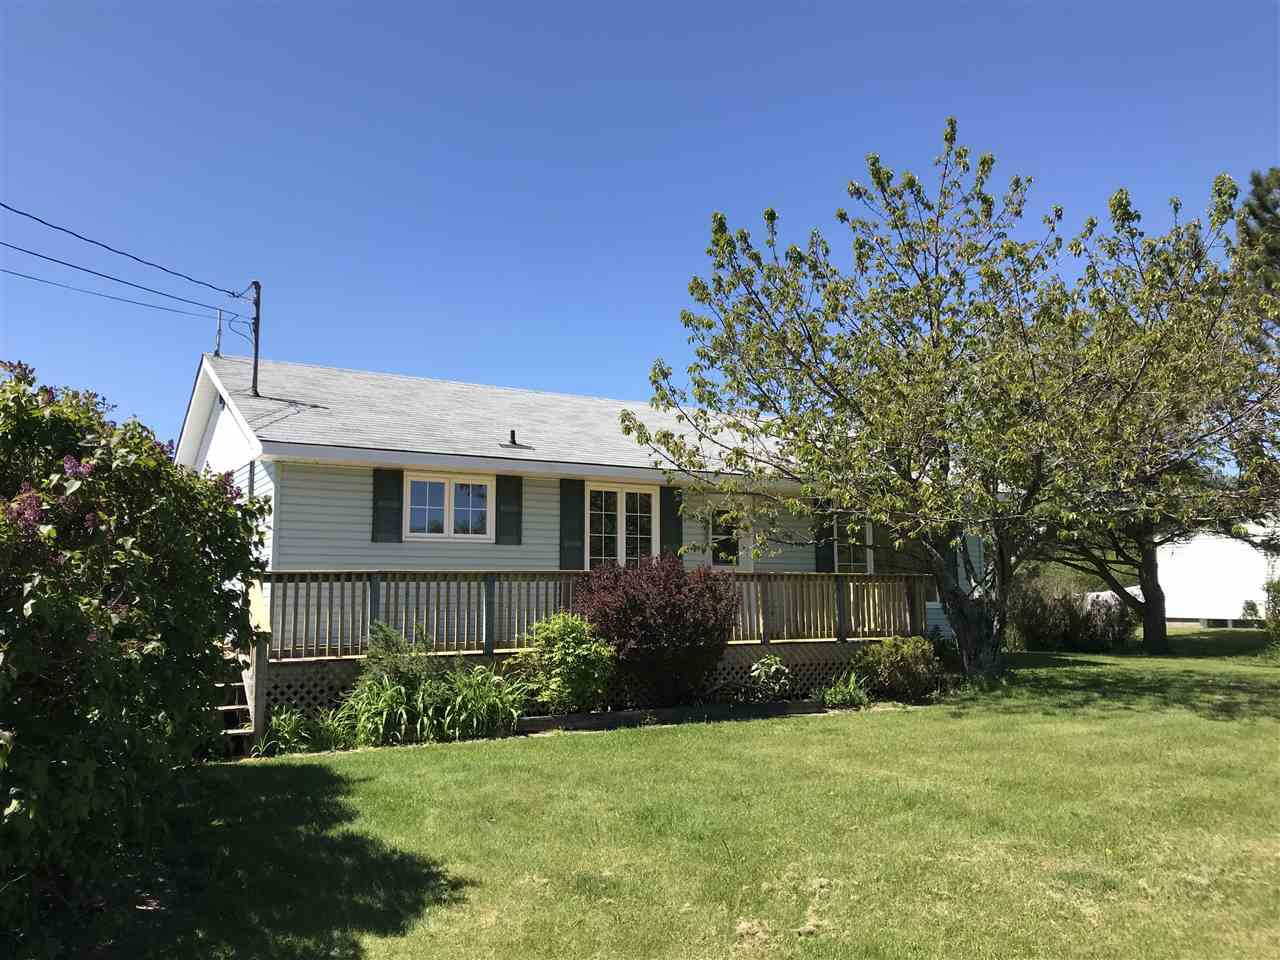 Main Photo: 842 MacLellans Brook Road in Mclellans Brook: 108-Rural Pictou County Residential for sale (Northern Region)  : MLS®# 201913654